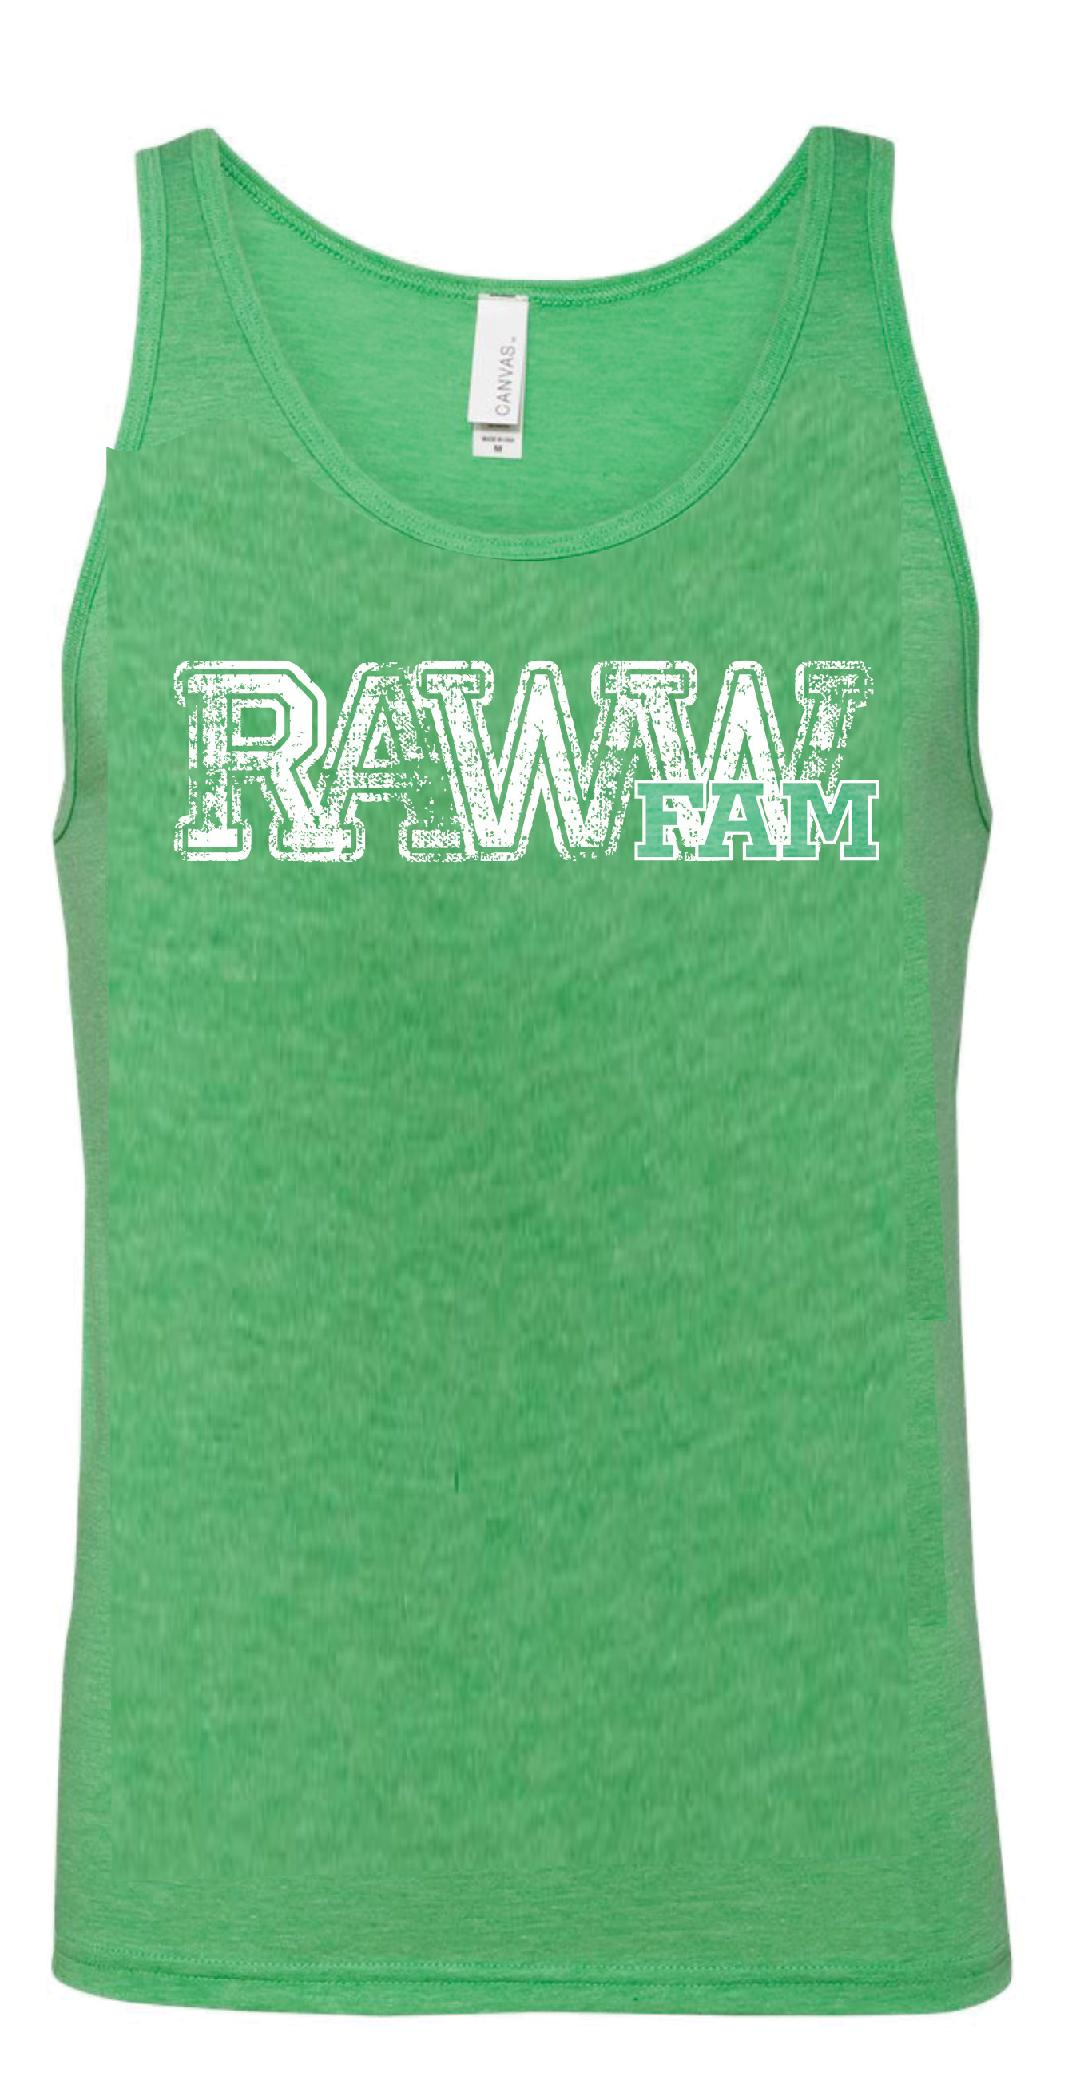 RawwFamm Adult Triblend Green Tank Top